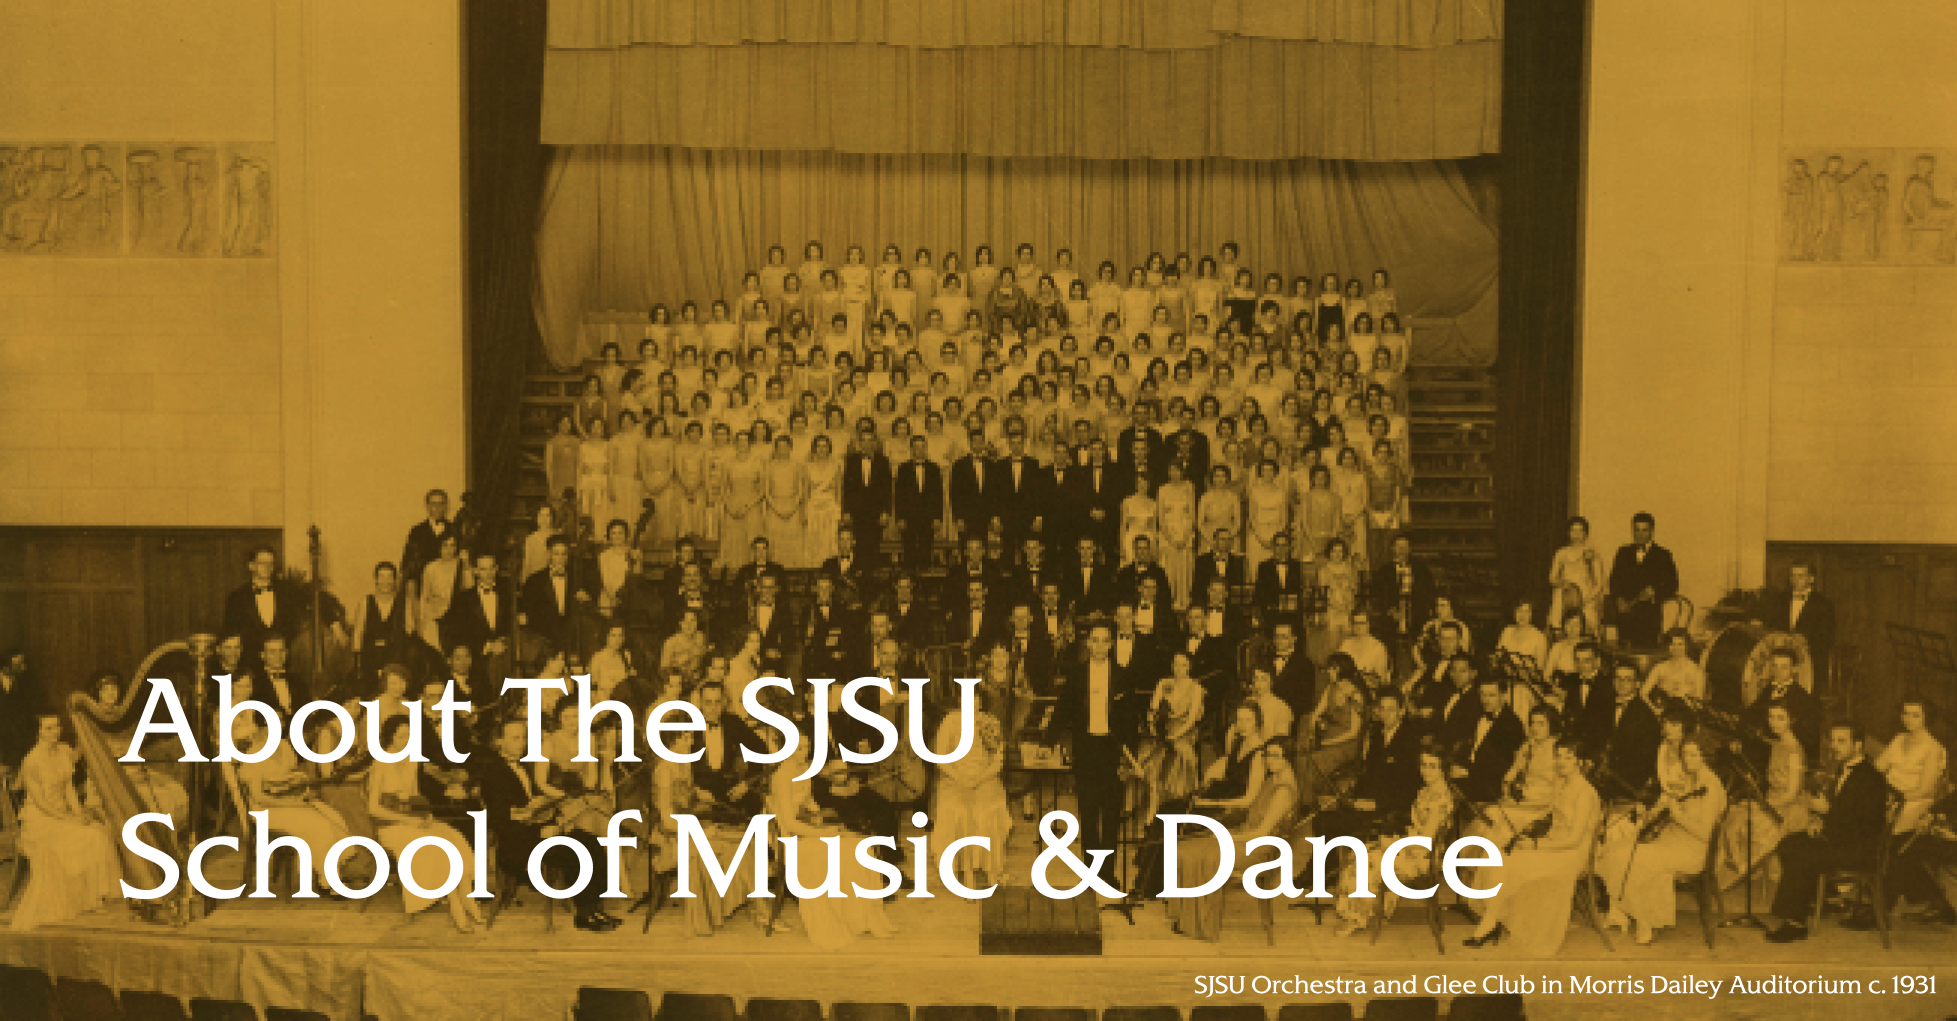 About the SJSU School of Music & Dance